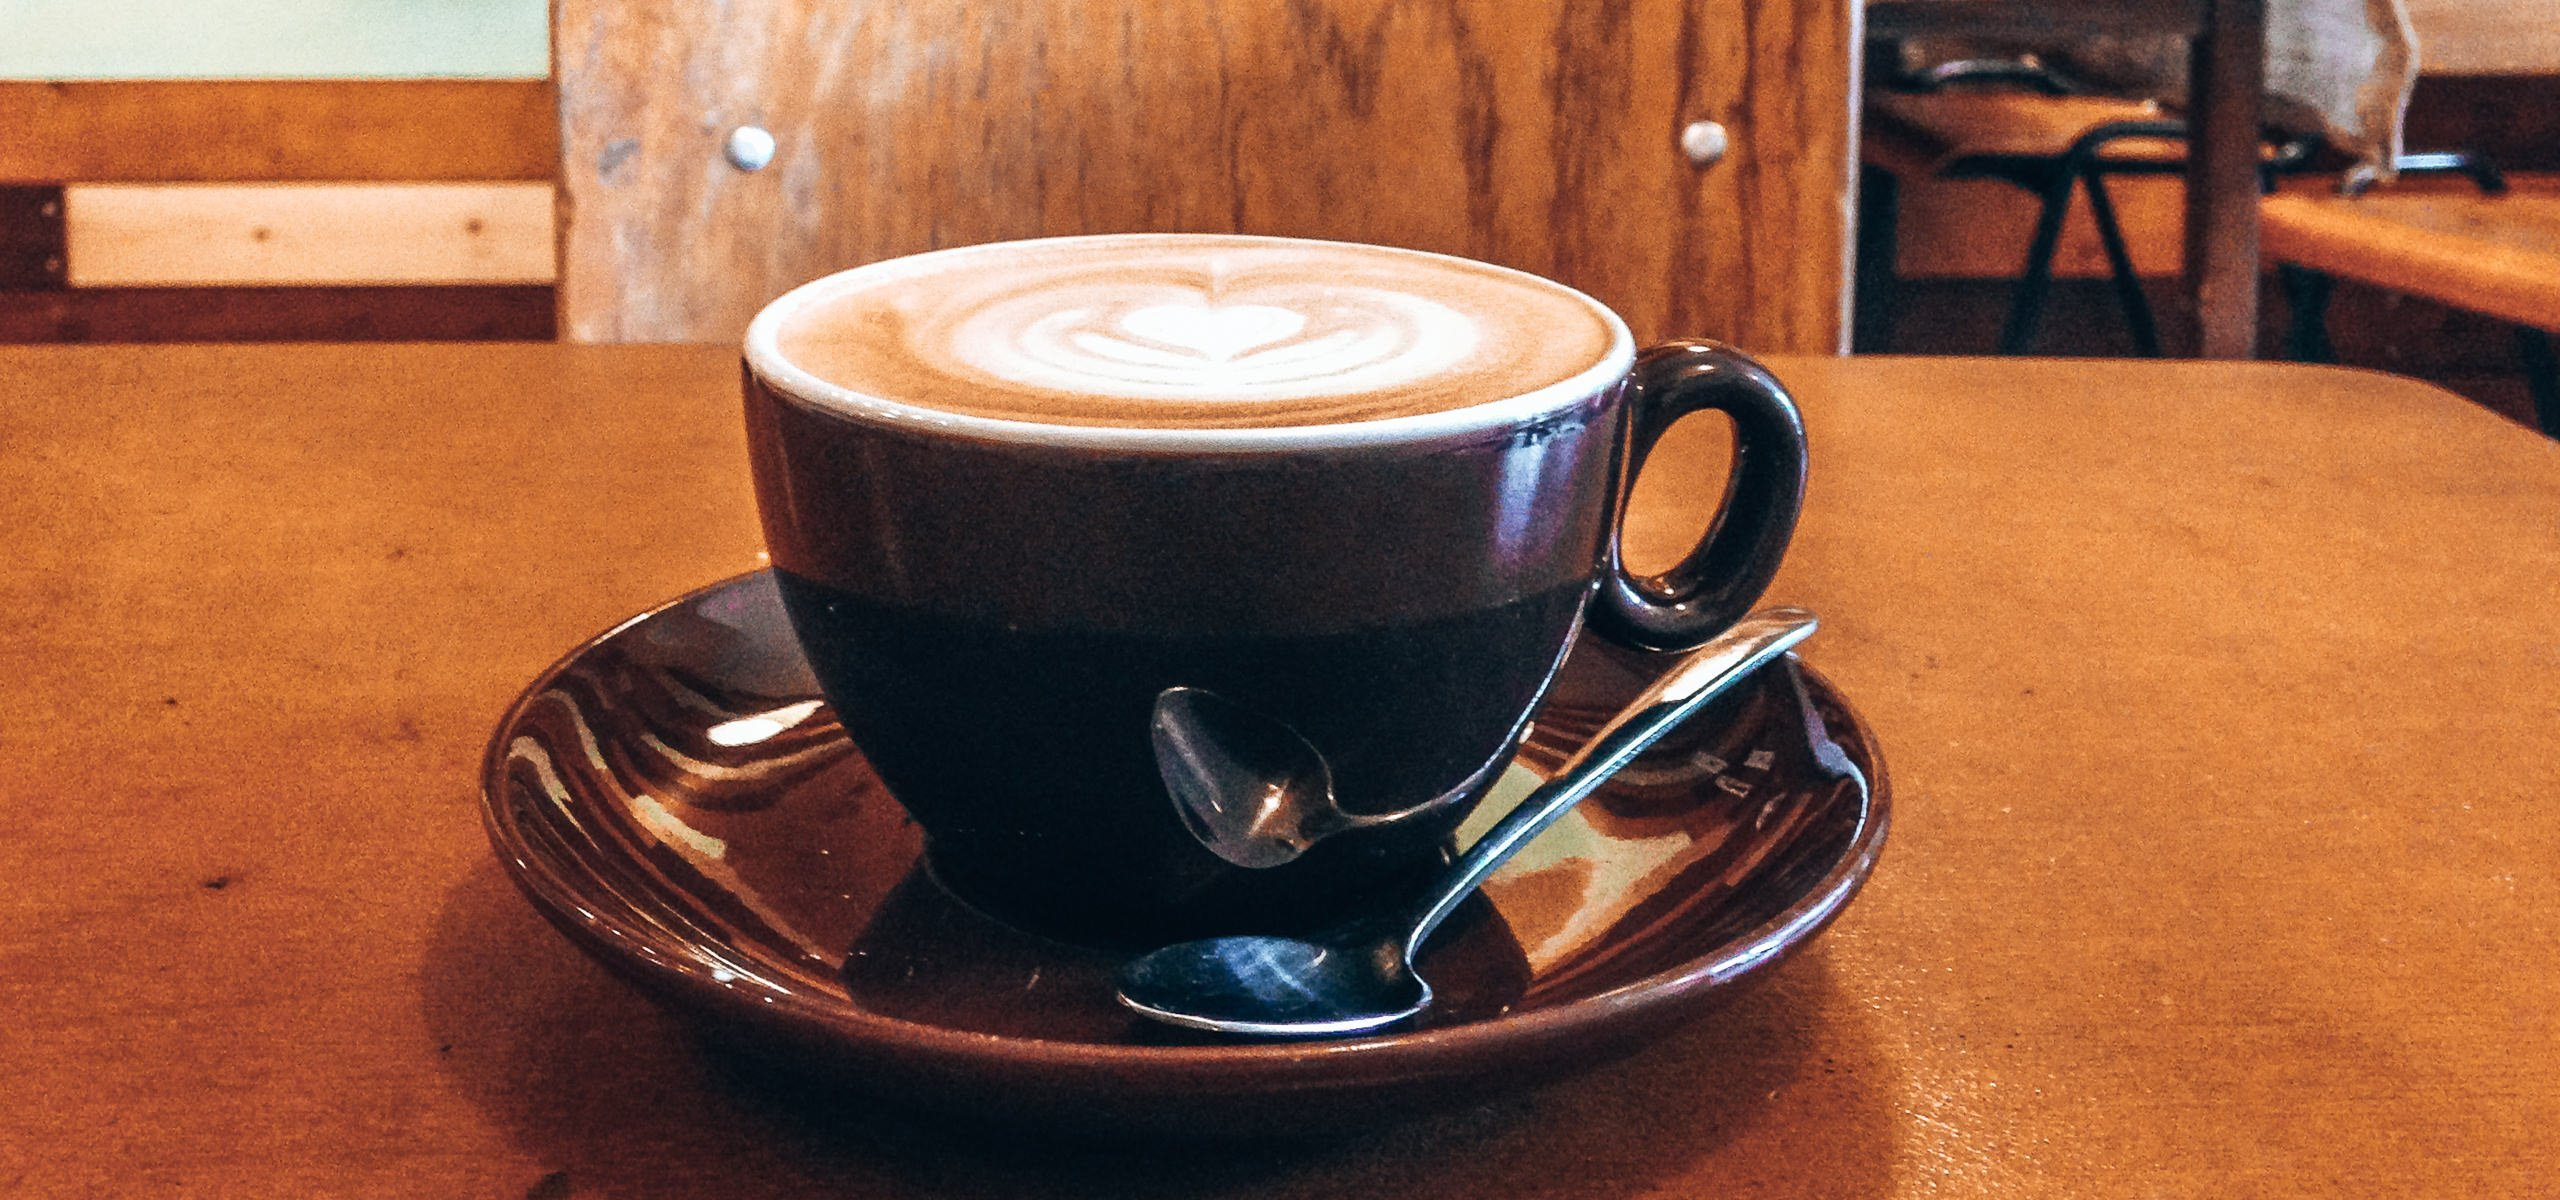 The Best Specialty Coffee In Amsterdam: 10 Cafes You Should Visit